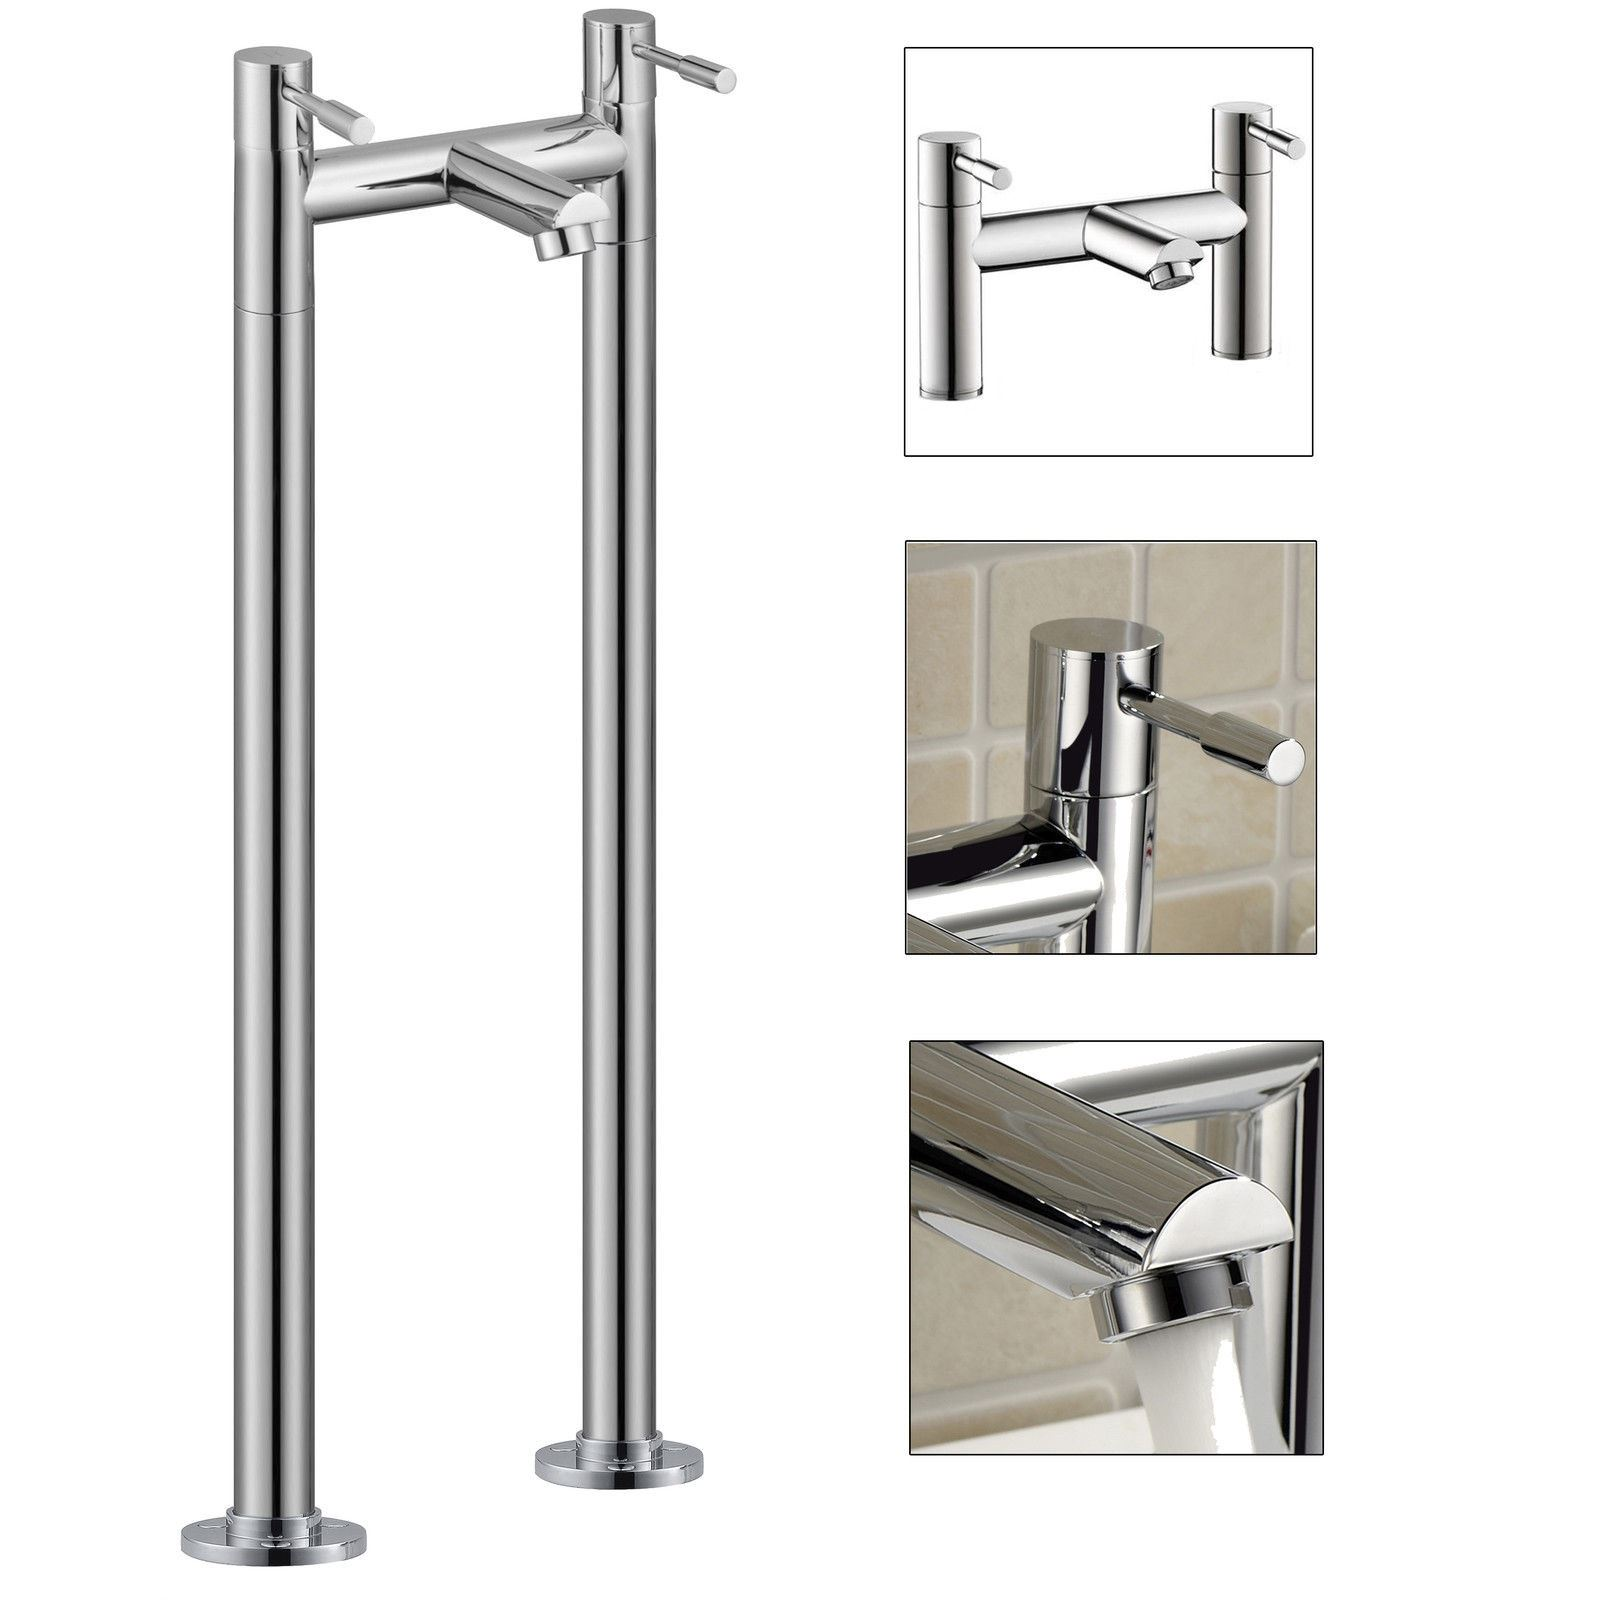 freestanding bath filler mixer pipe legs chrome modern bathroom tap